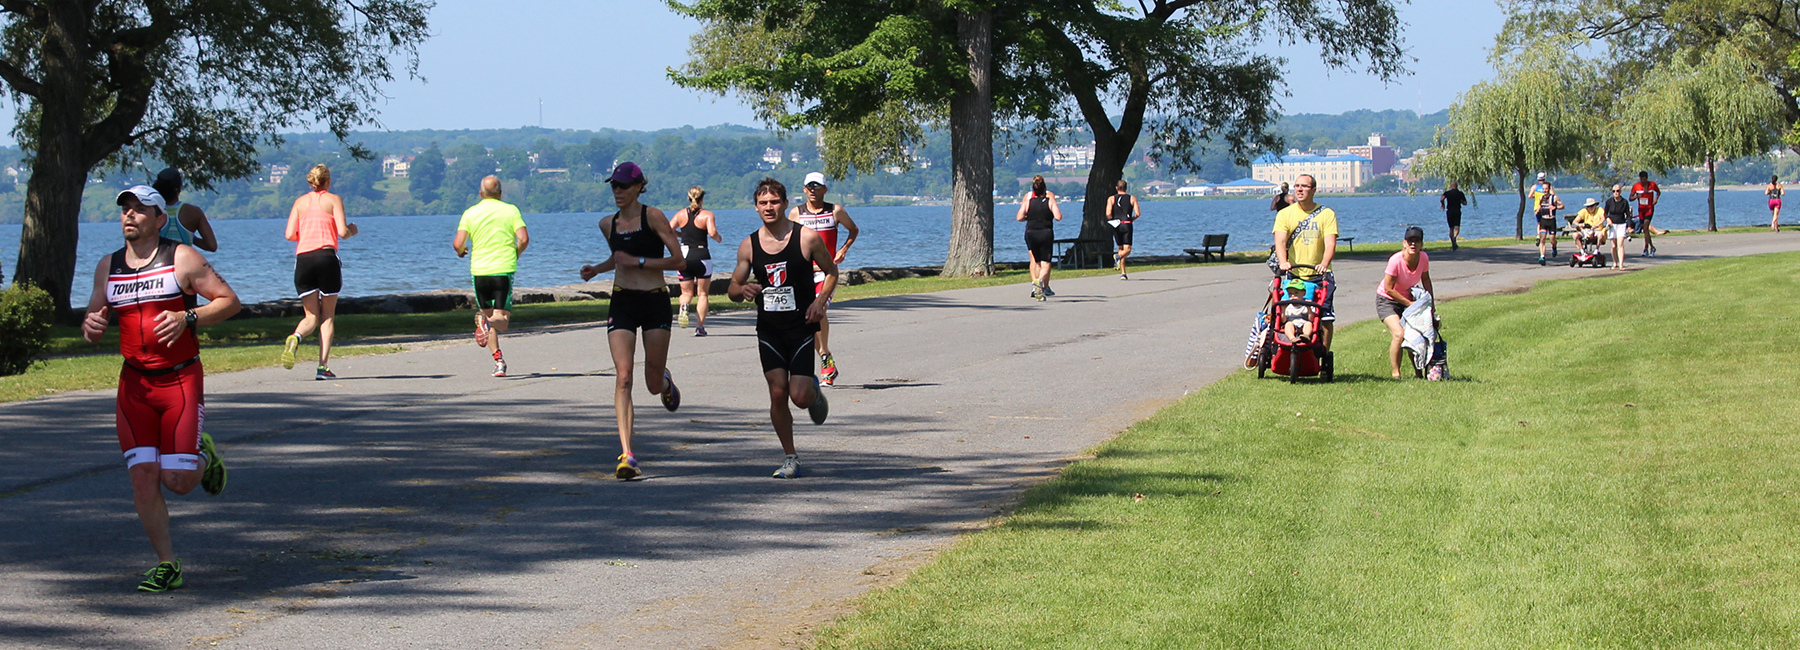 Musselman Triathlon in Geneva, NY, Photo: Dennis Angelo